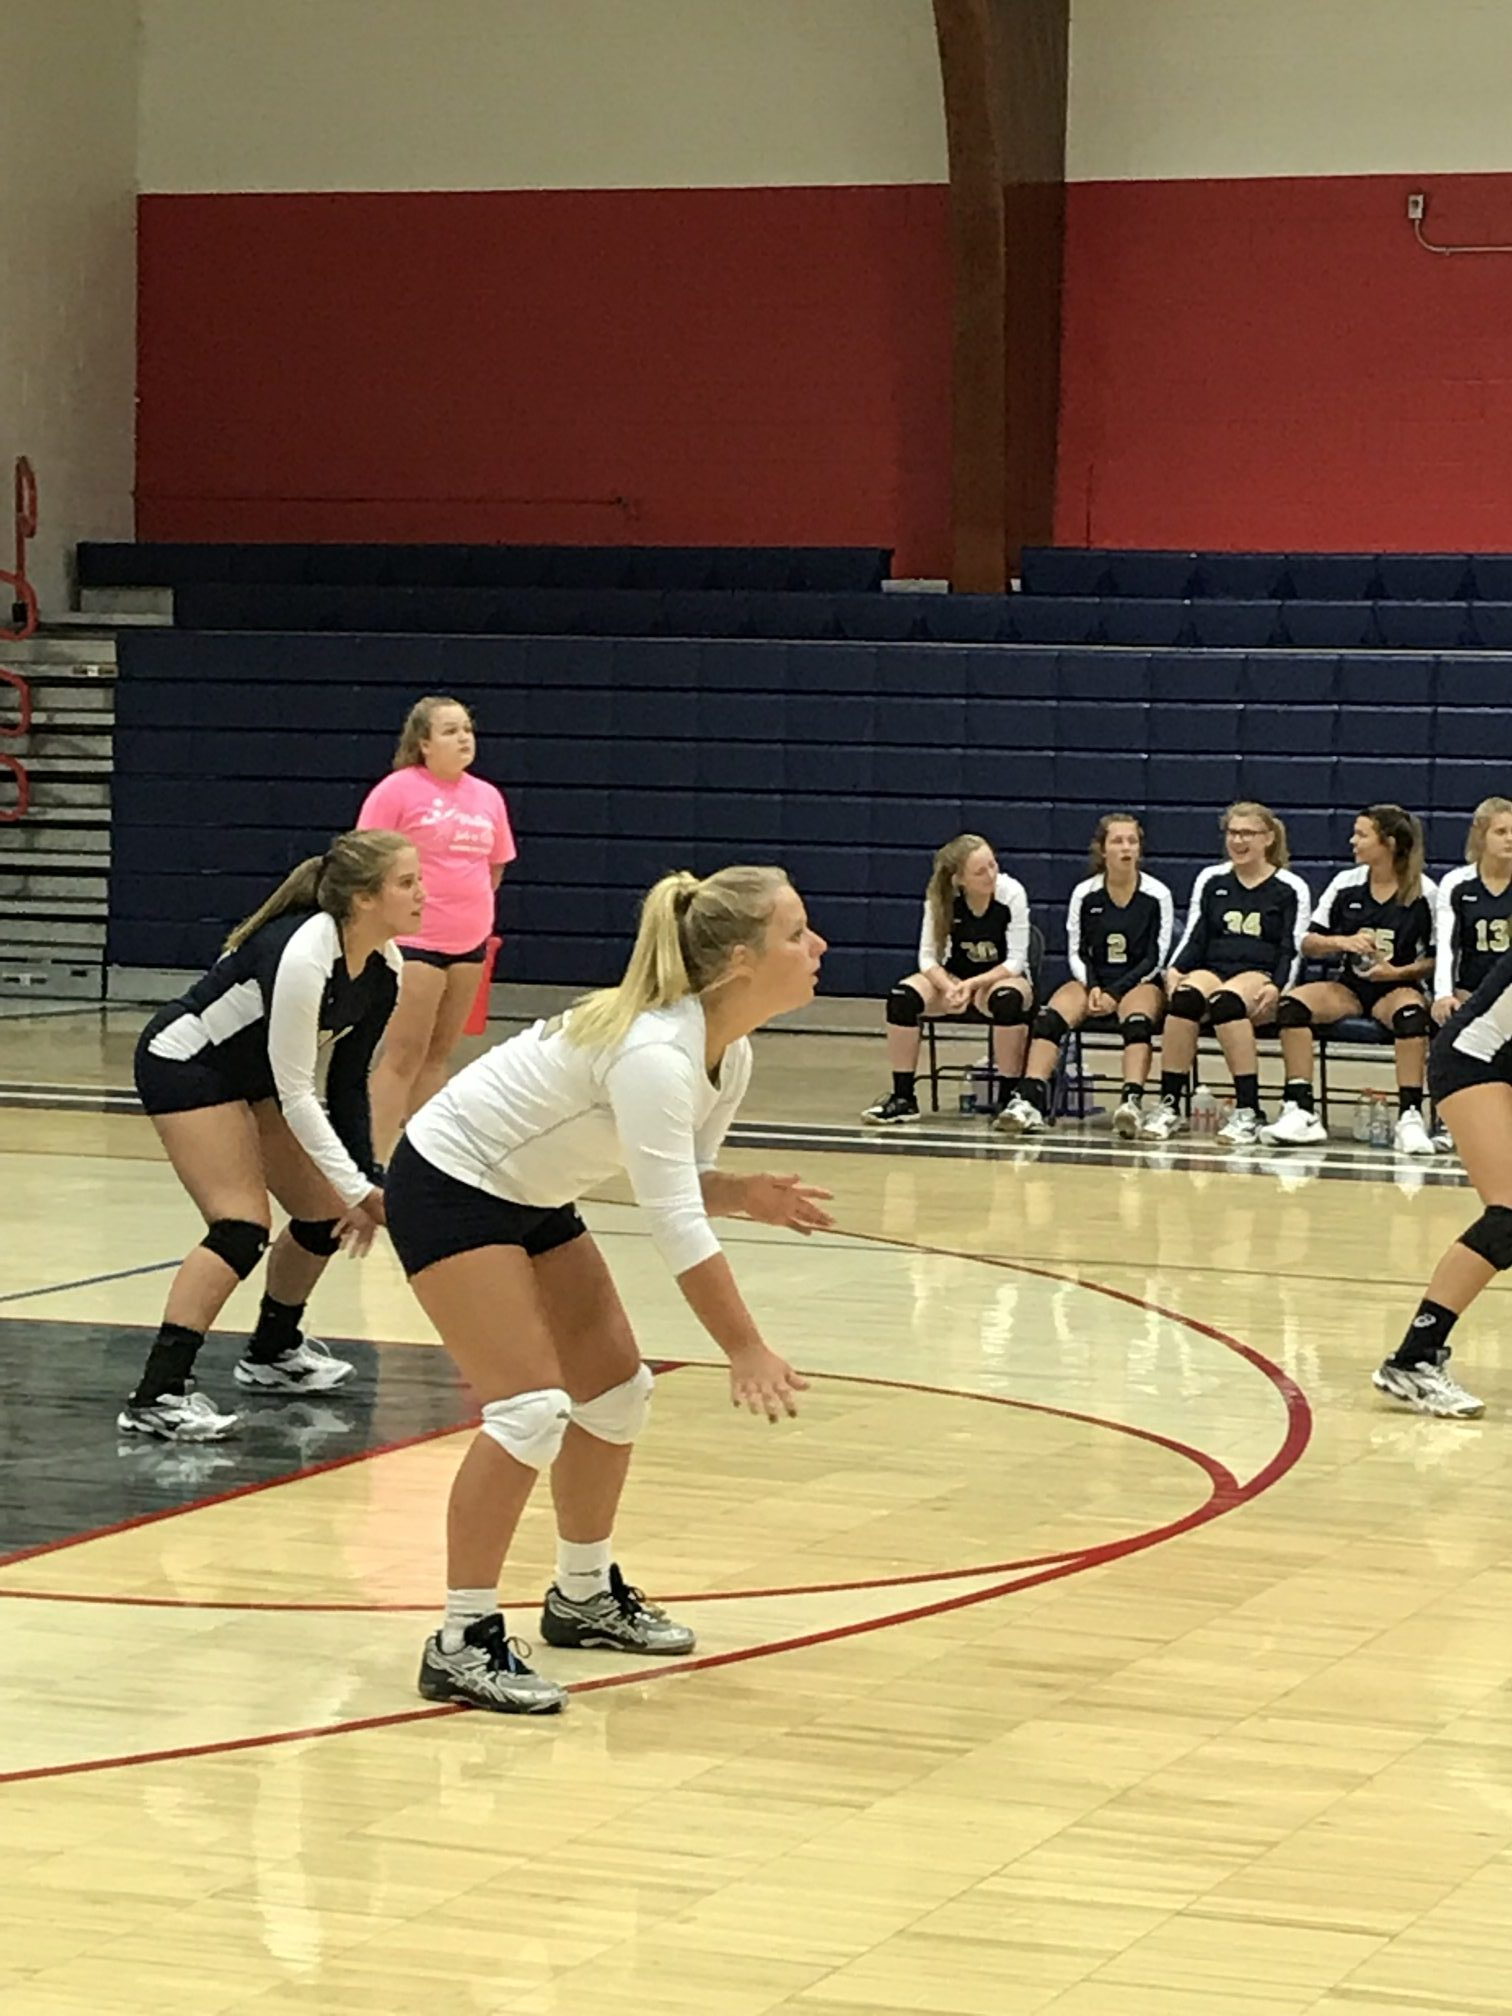 Mustang VB opens with scrimmage at Seeger